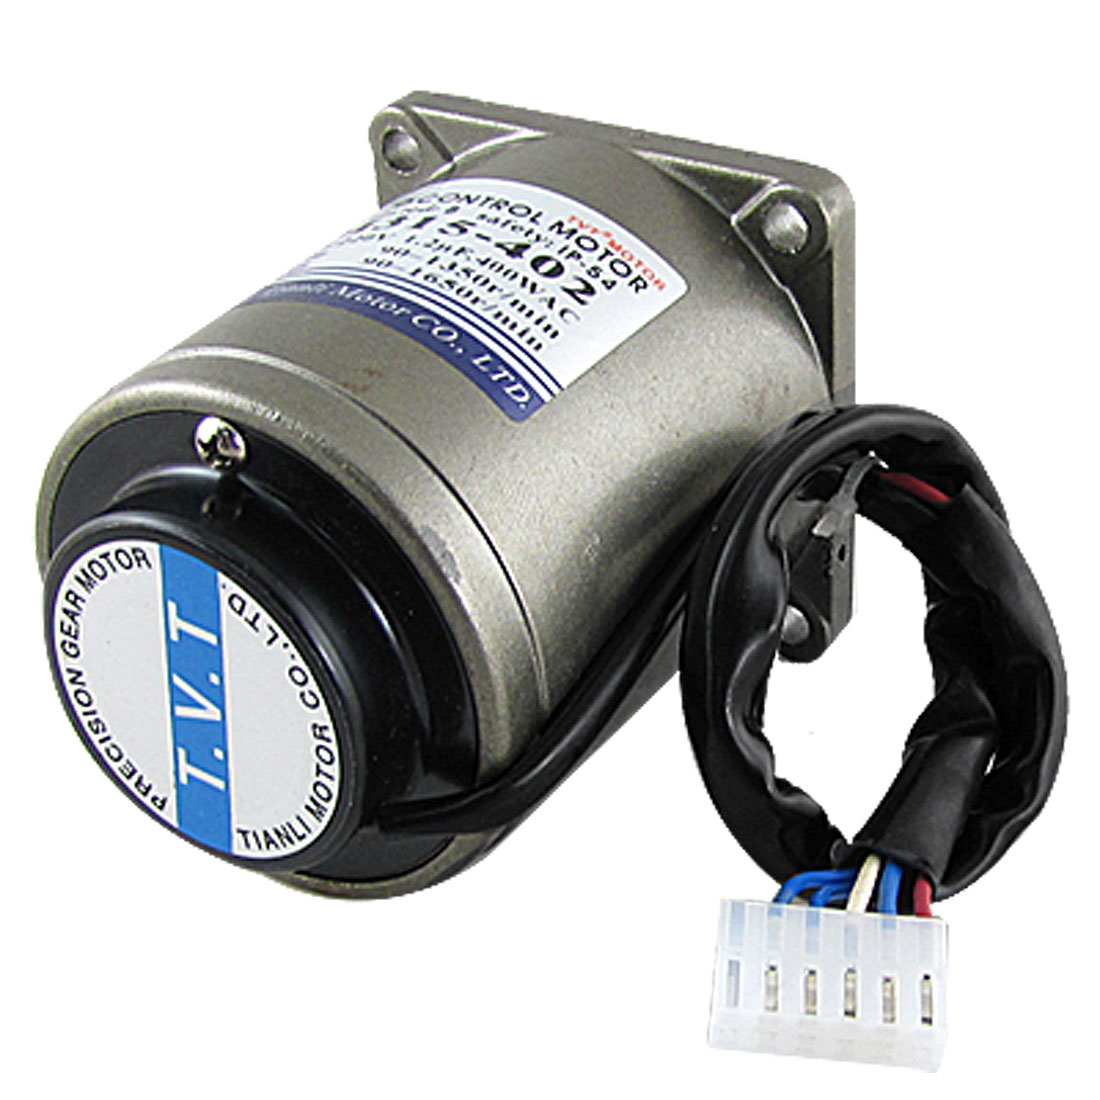 15W Power AC Stepless Variable Speed Controller Motor 220V